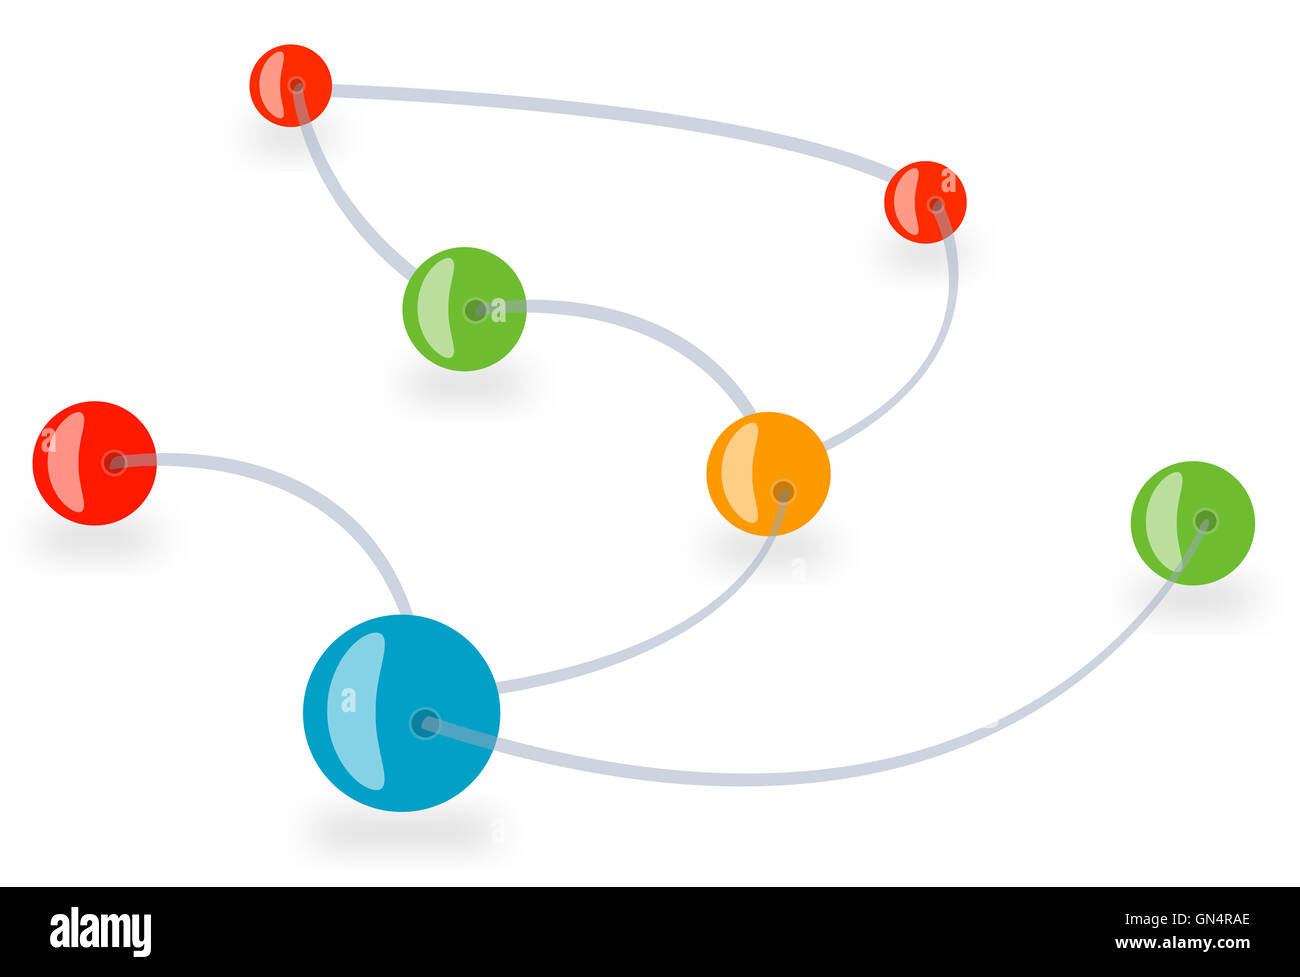 Connections - Stock Image